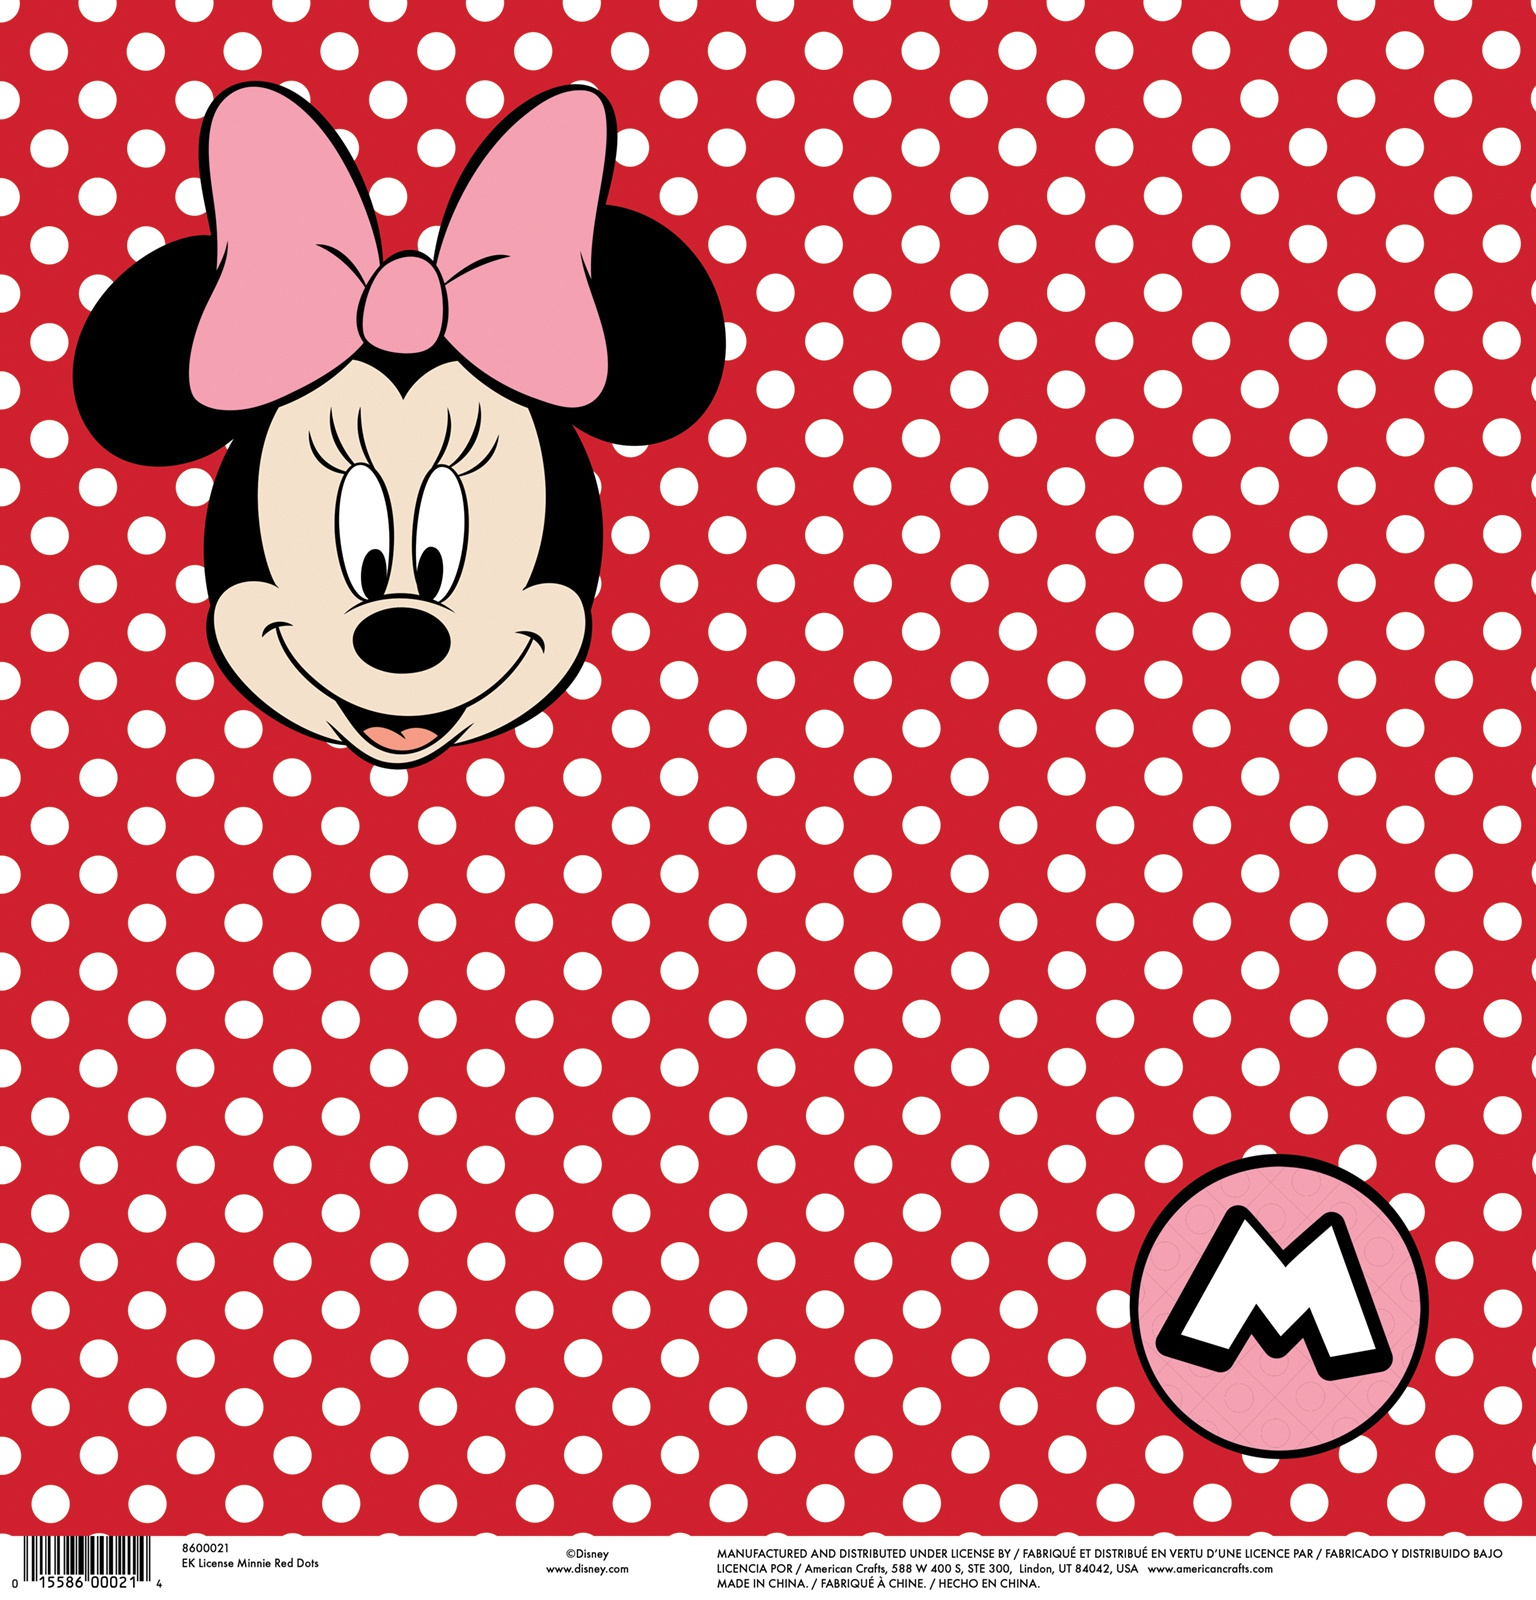 EK Disney Single-Sided Cardstock 12X12-Minnie Red Dots